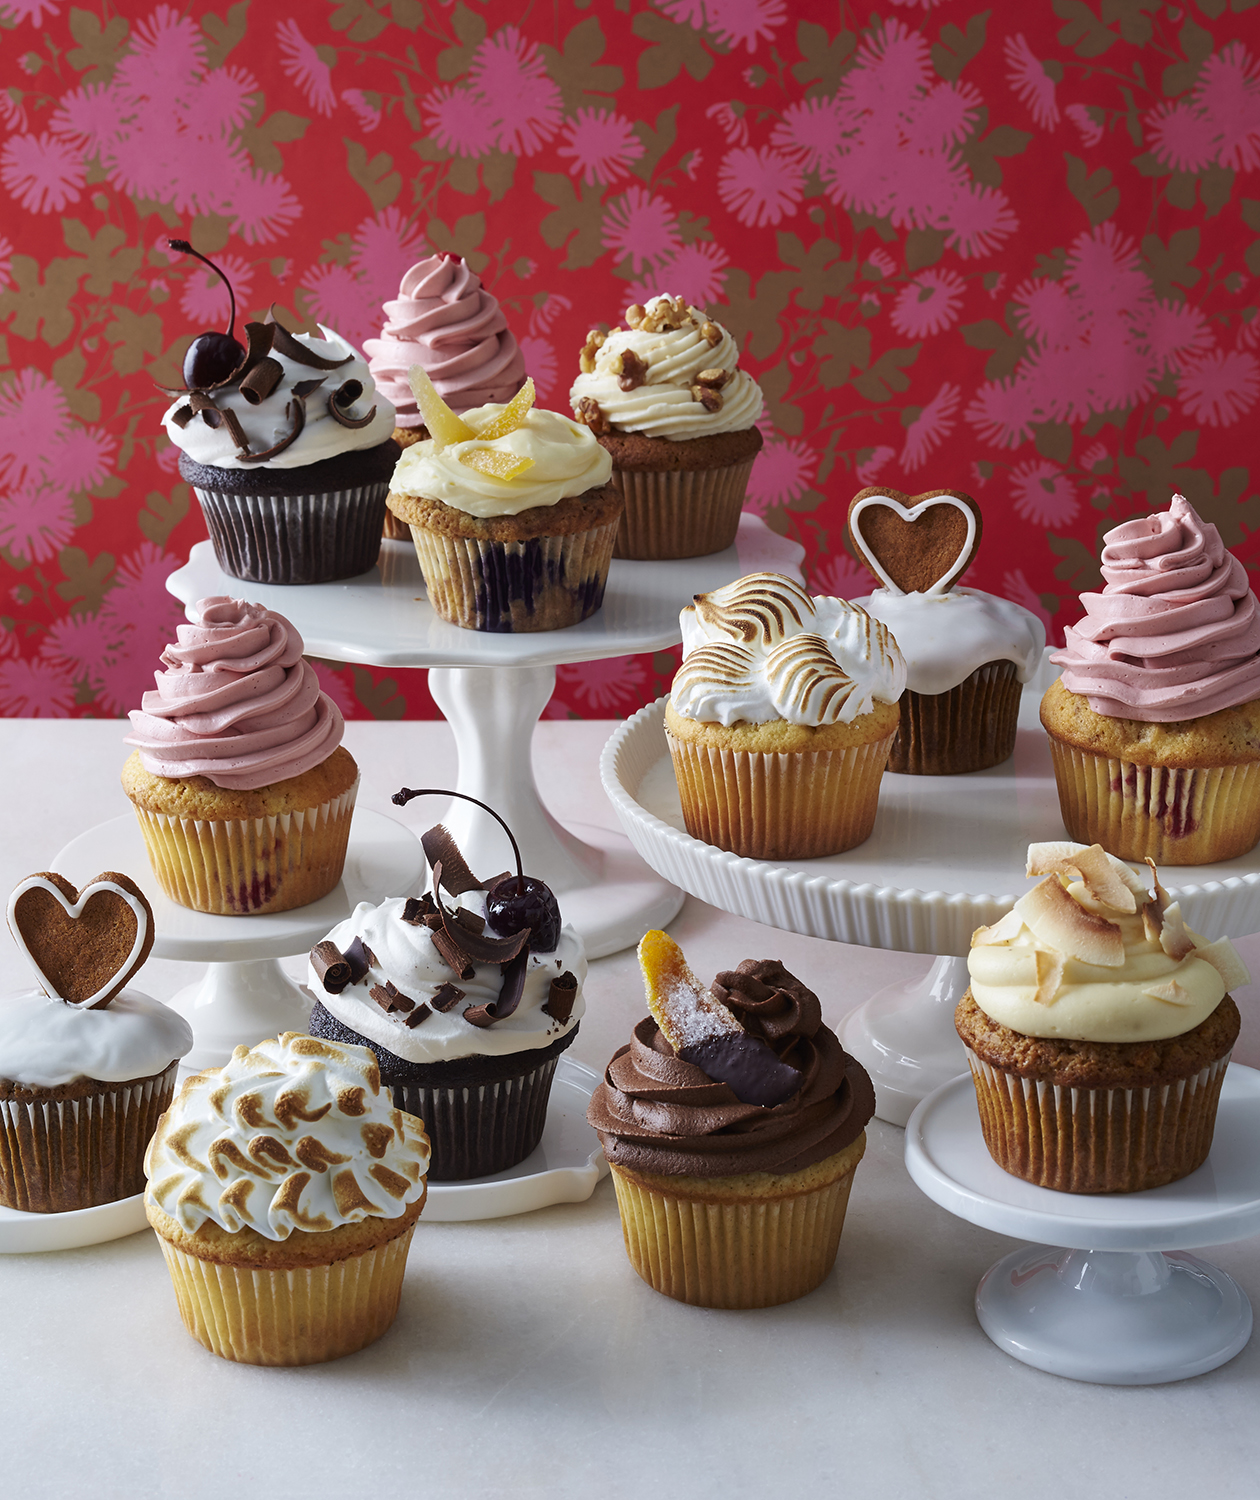 8 valentine's day cupcakes you'll fall in love with | real simple, Ideas